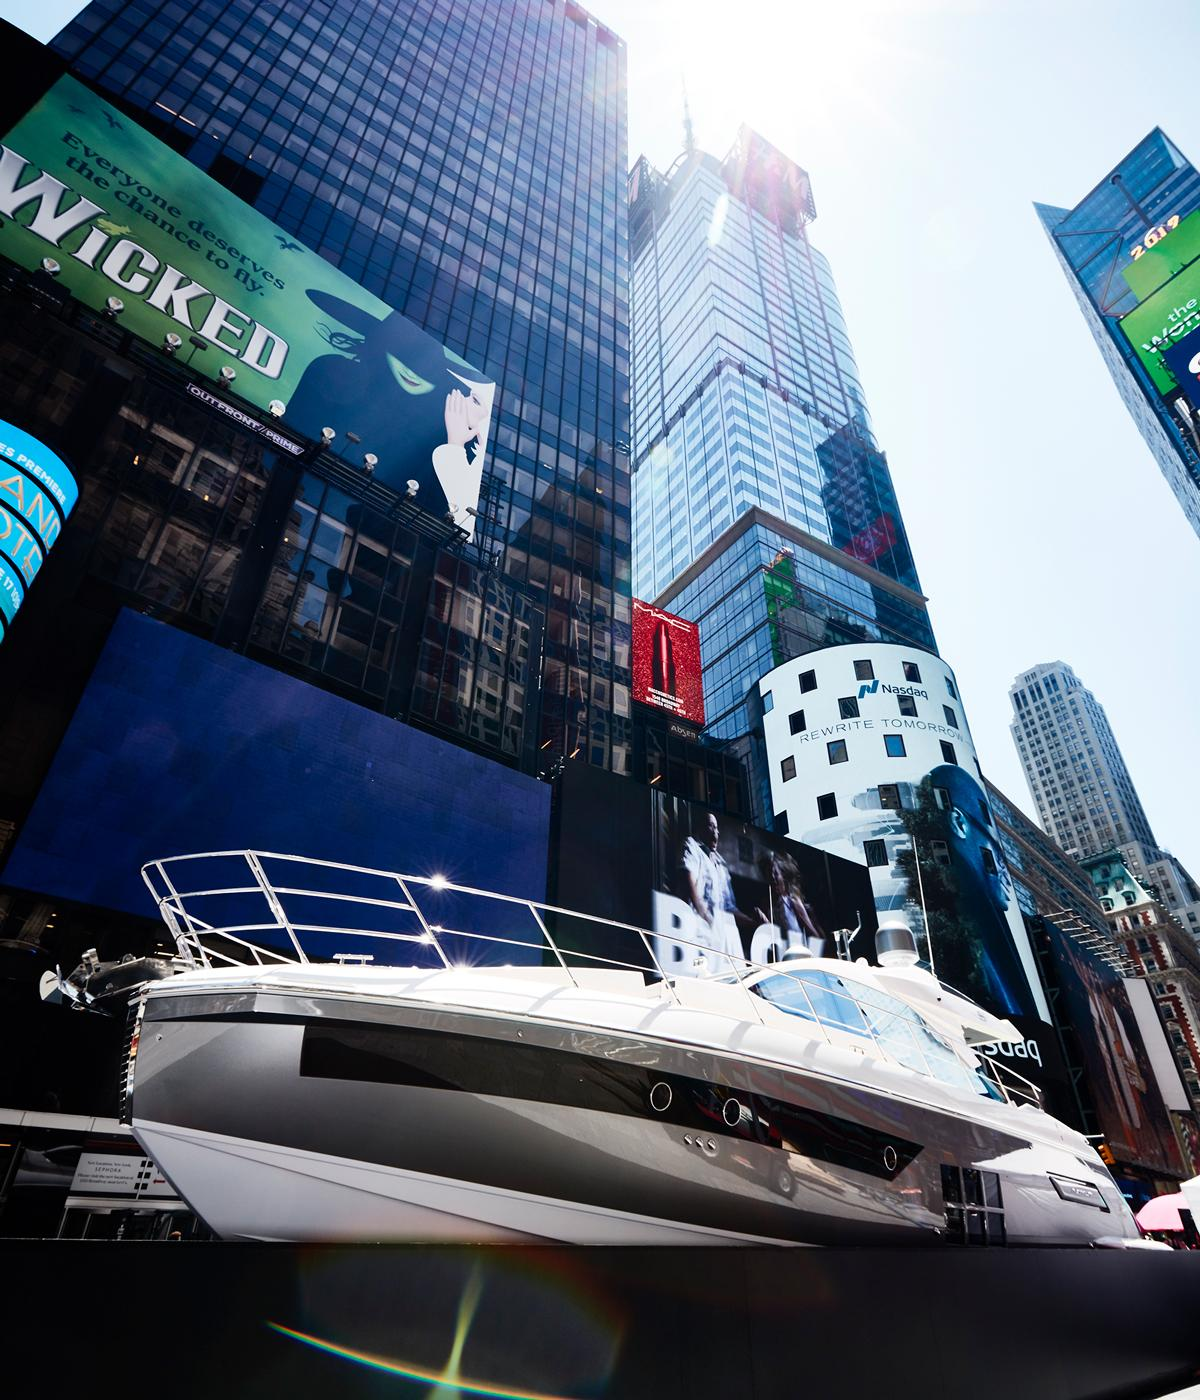 Azimut S6 Yacht installed in Times Square, NYC